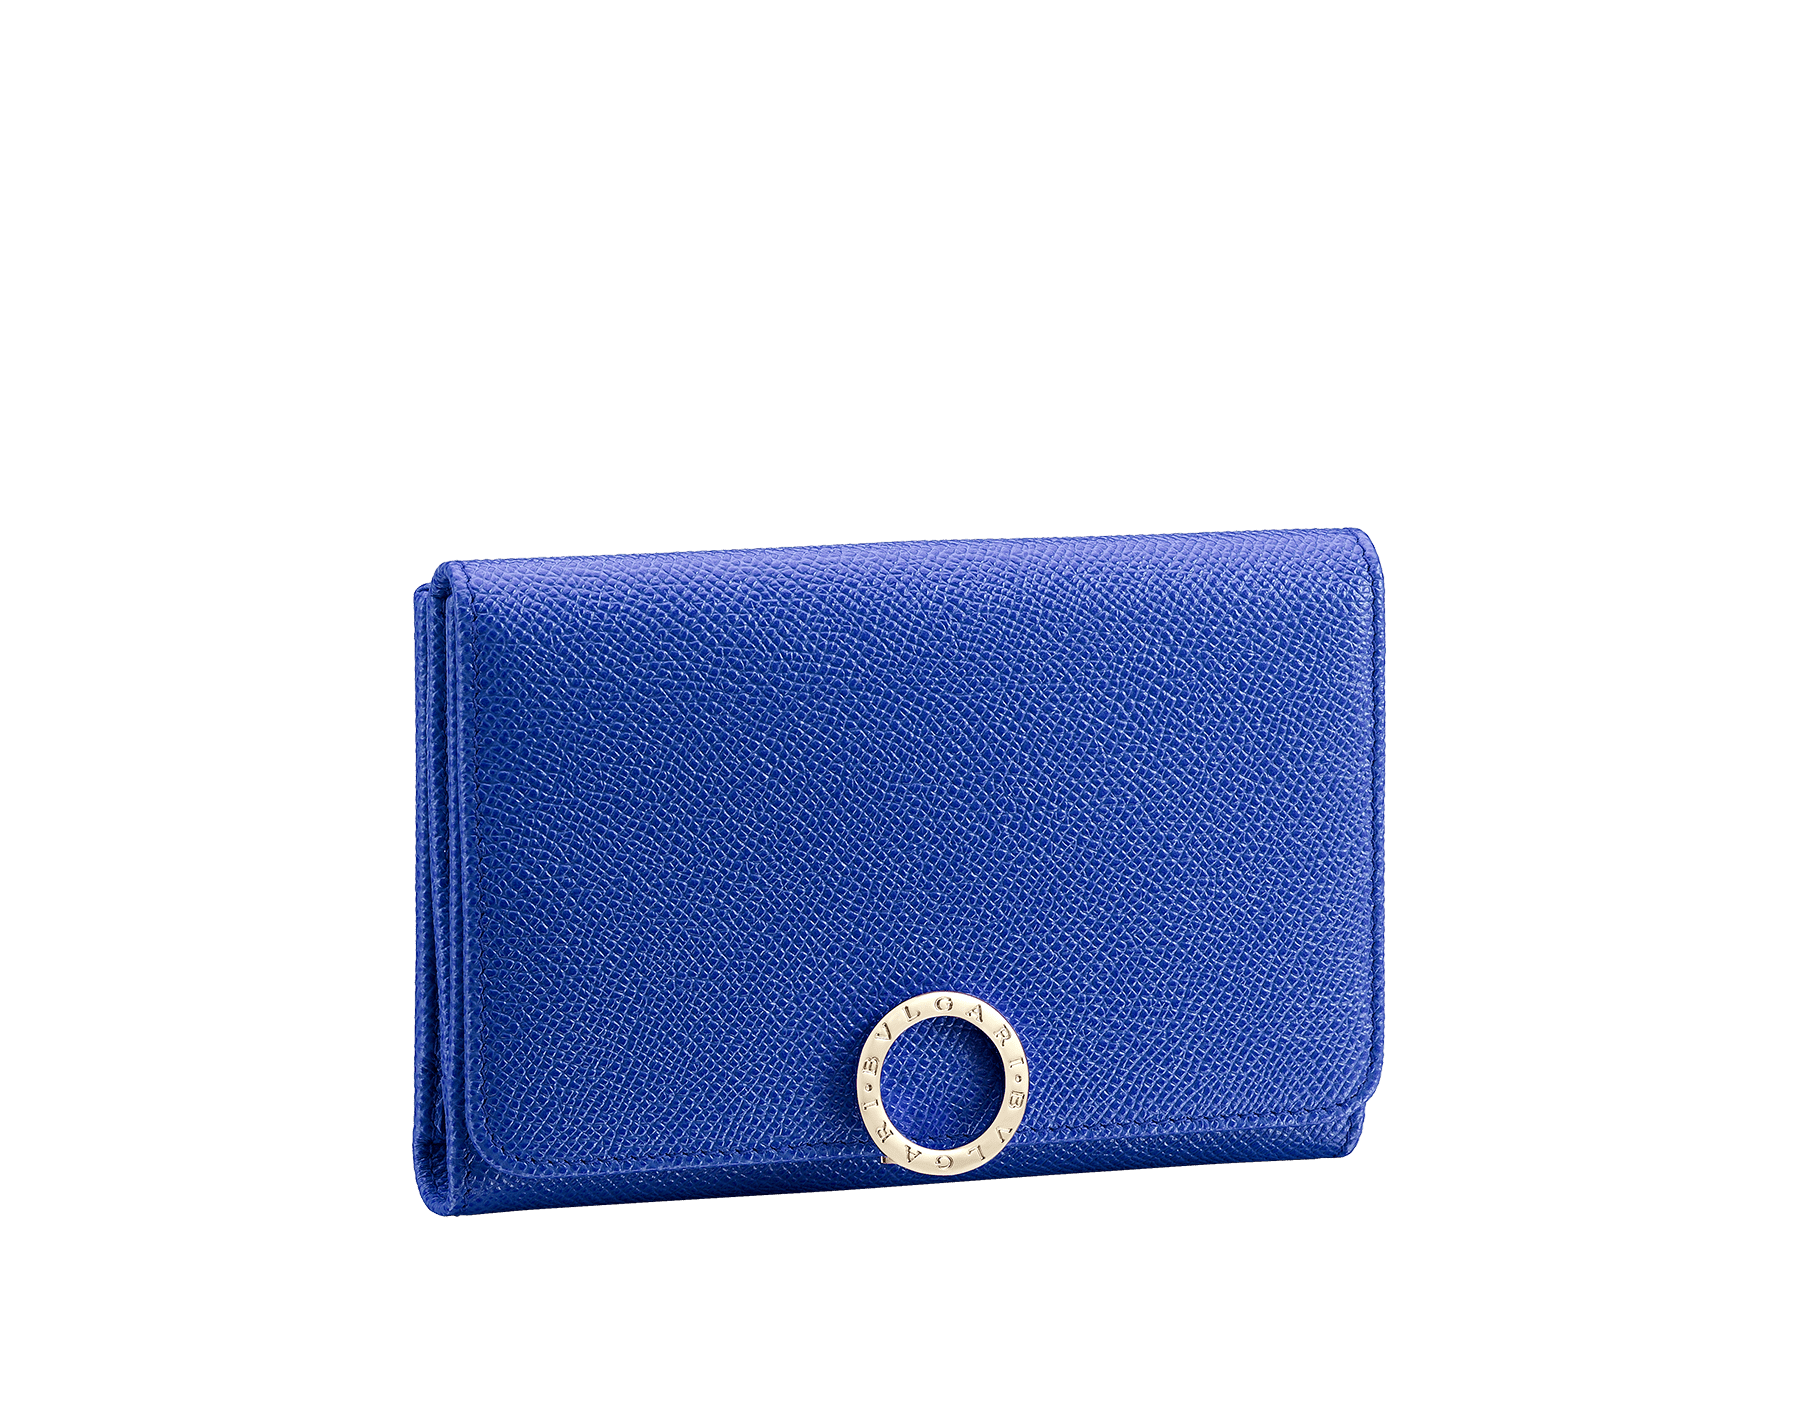 BVLGARI BVLGARI compact pochette in cobalt tourmaline grain calf leather and aster amethyst nappa leather. Iconic logo closure clip in light gold plated brass 287604 image 1